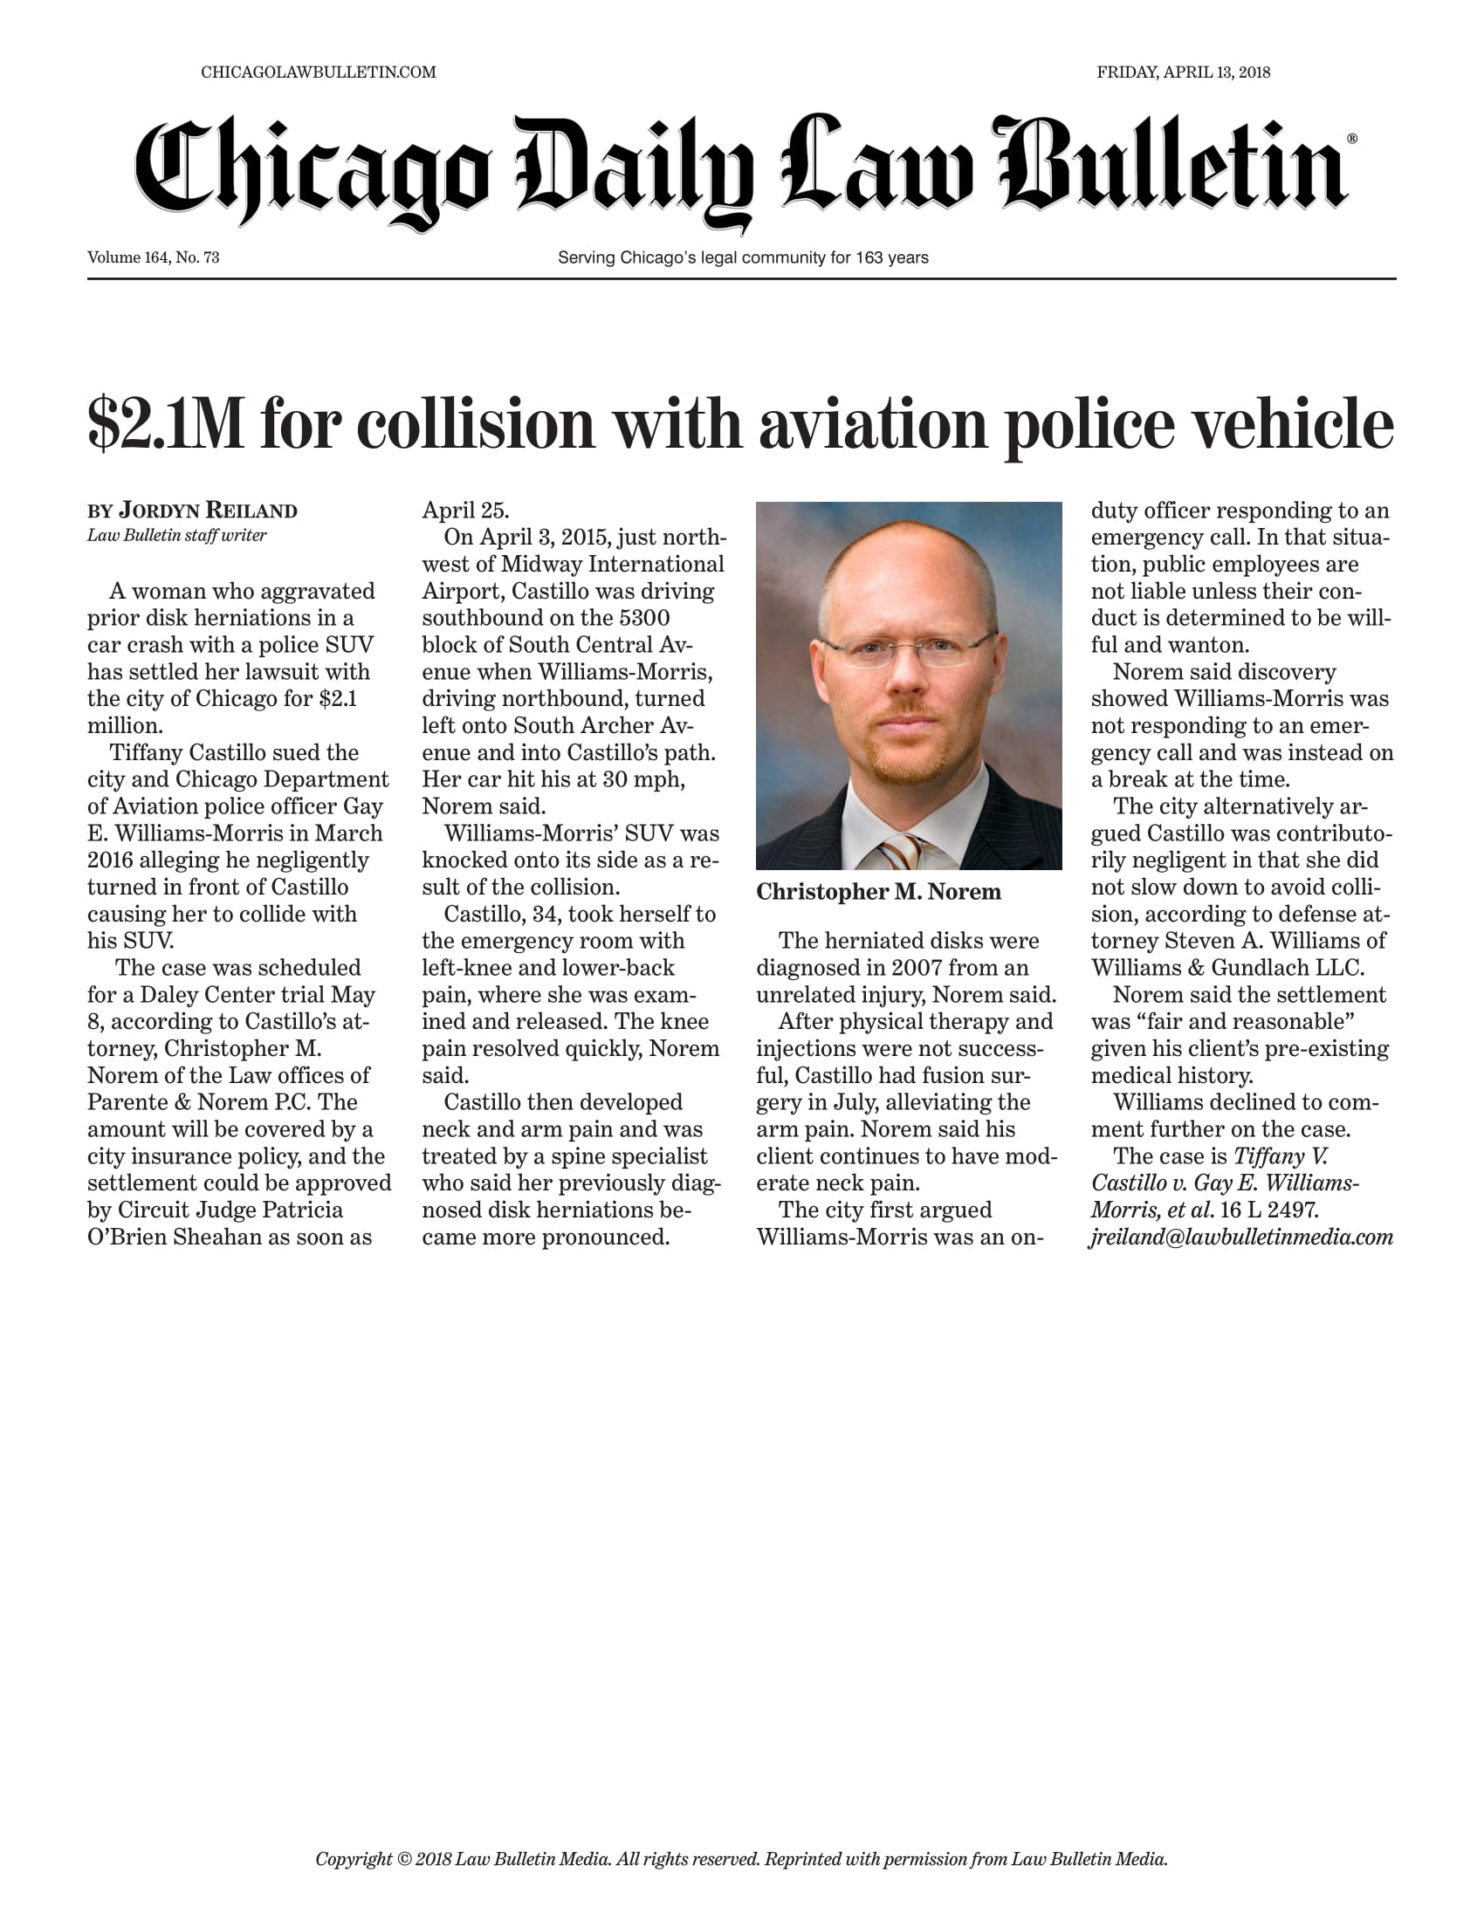 $2.1M for collision with aviation police vehicle